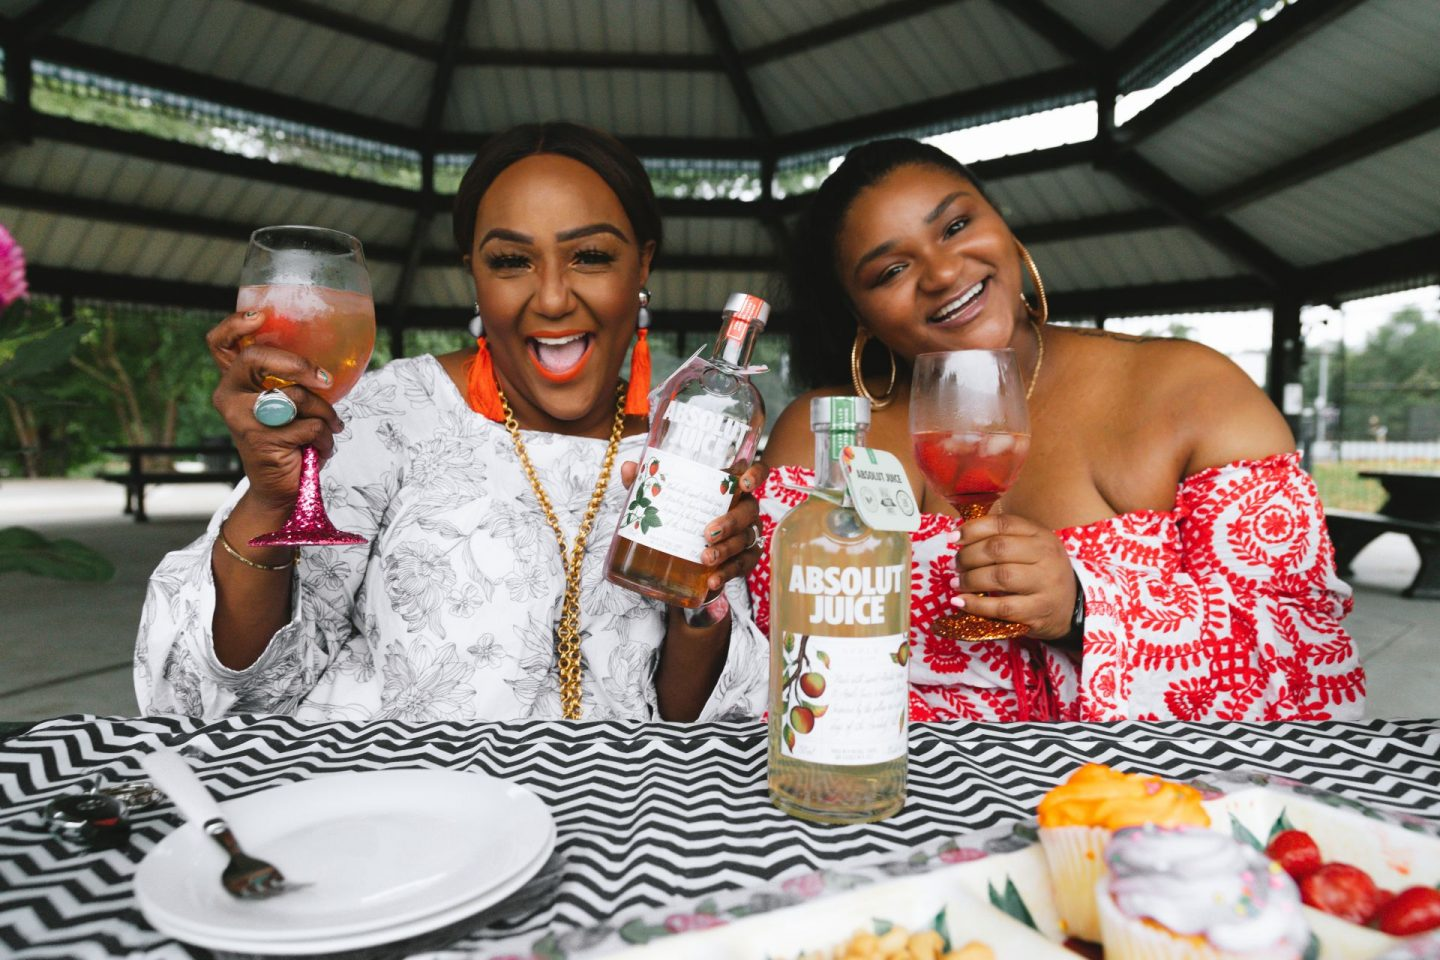 two black women at a table drinking Absolut Juice